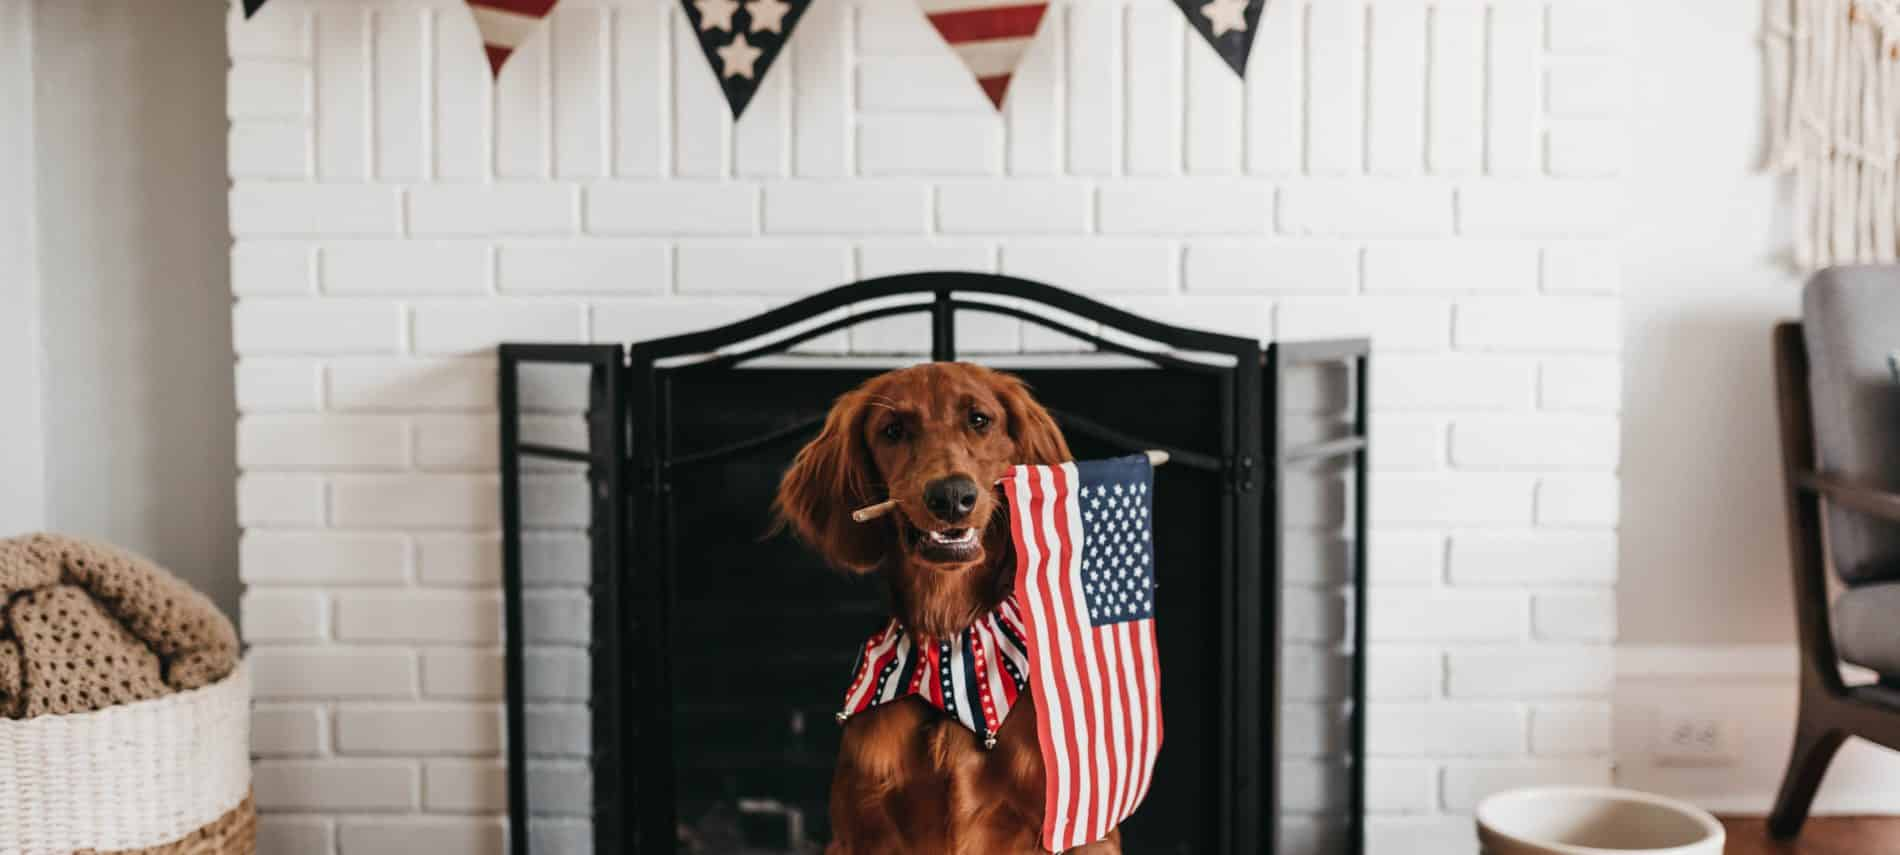 dog wearing a patriotic scarf holding an American flag in his teeth while sitting in front of a fire place